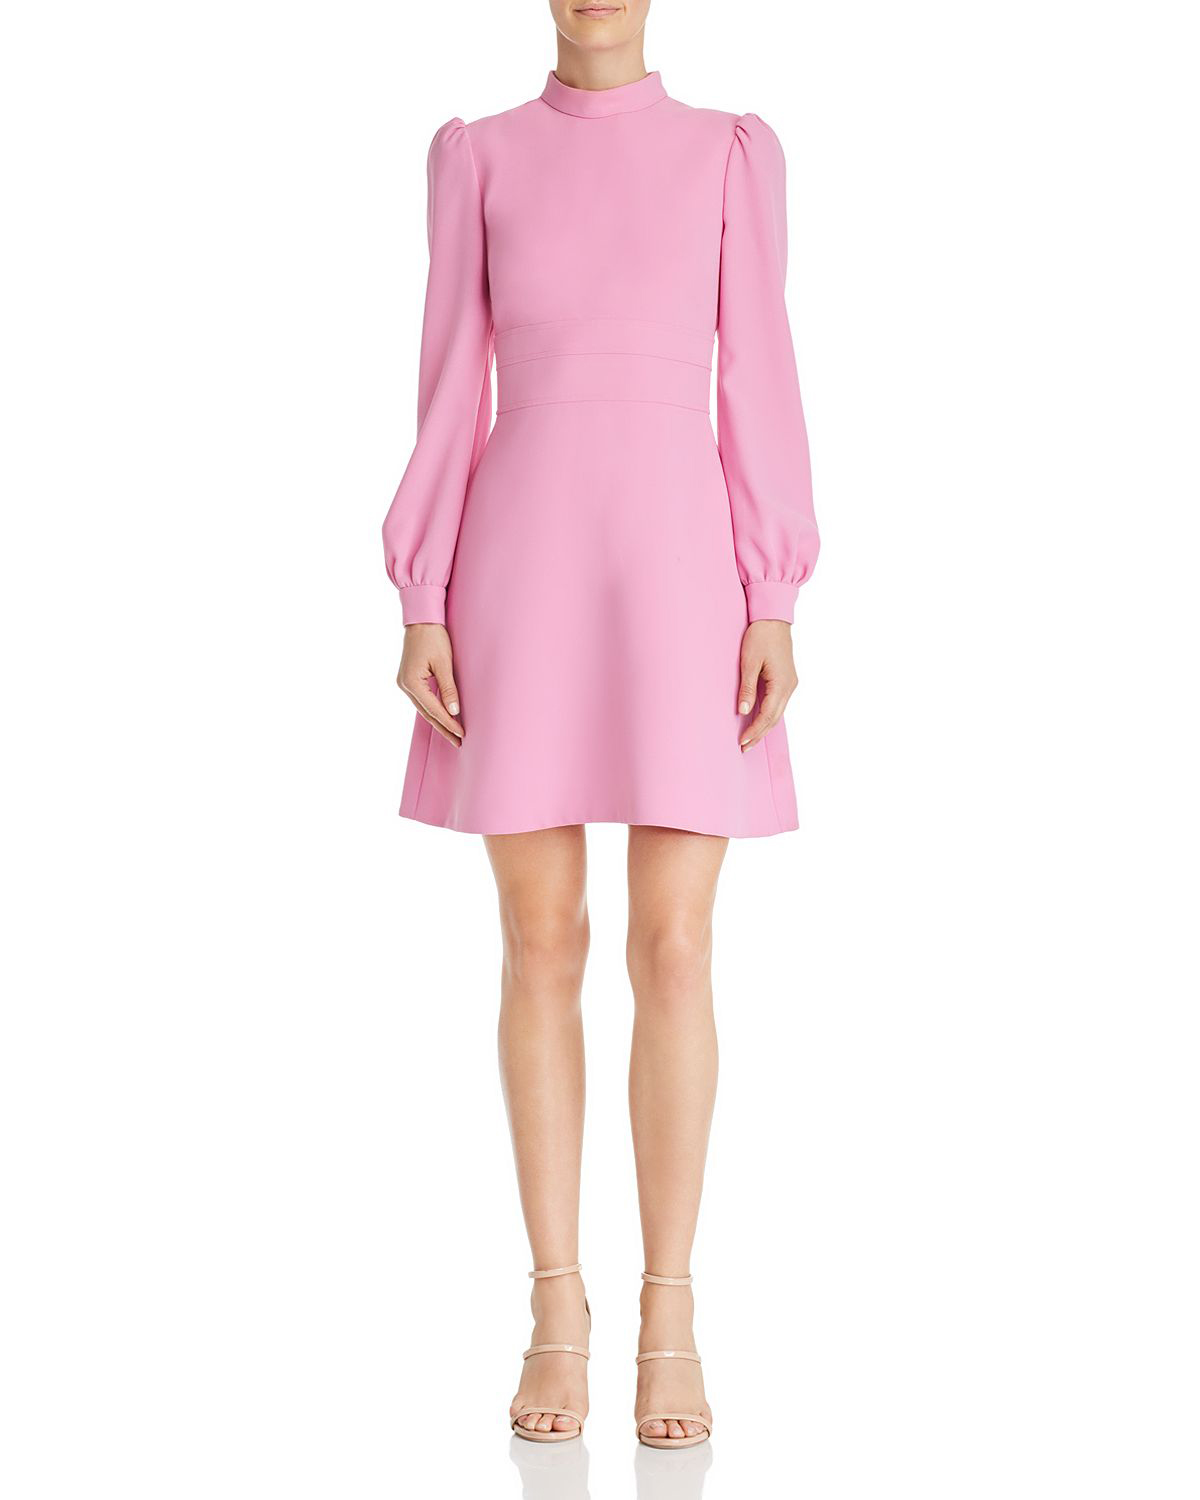 short sugar pink dress with balloon sleeve and high neck collar